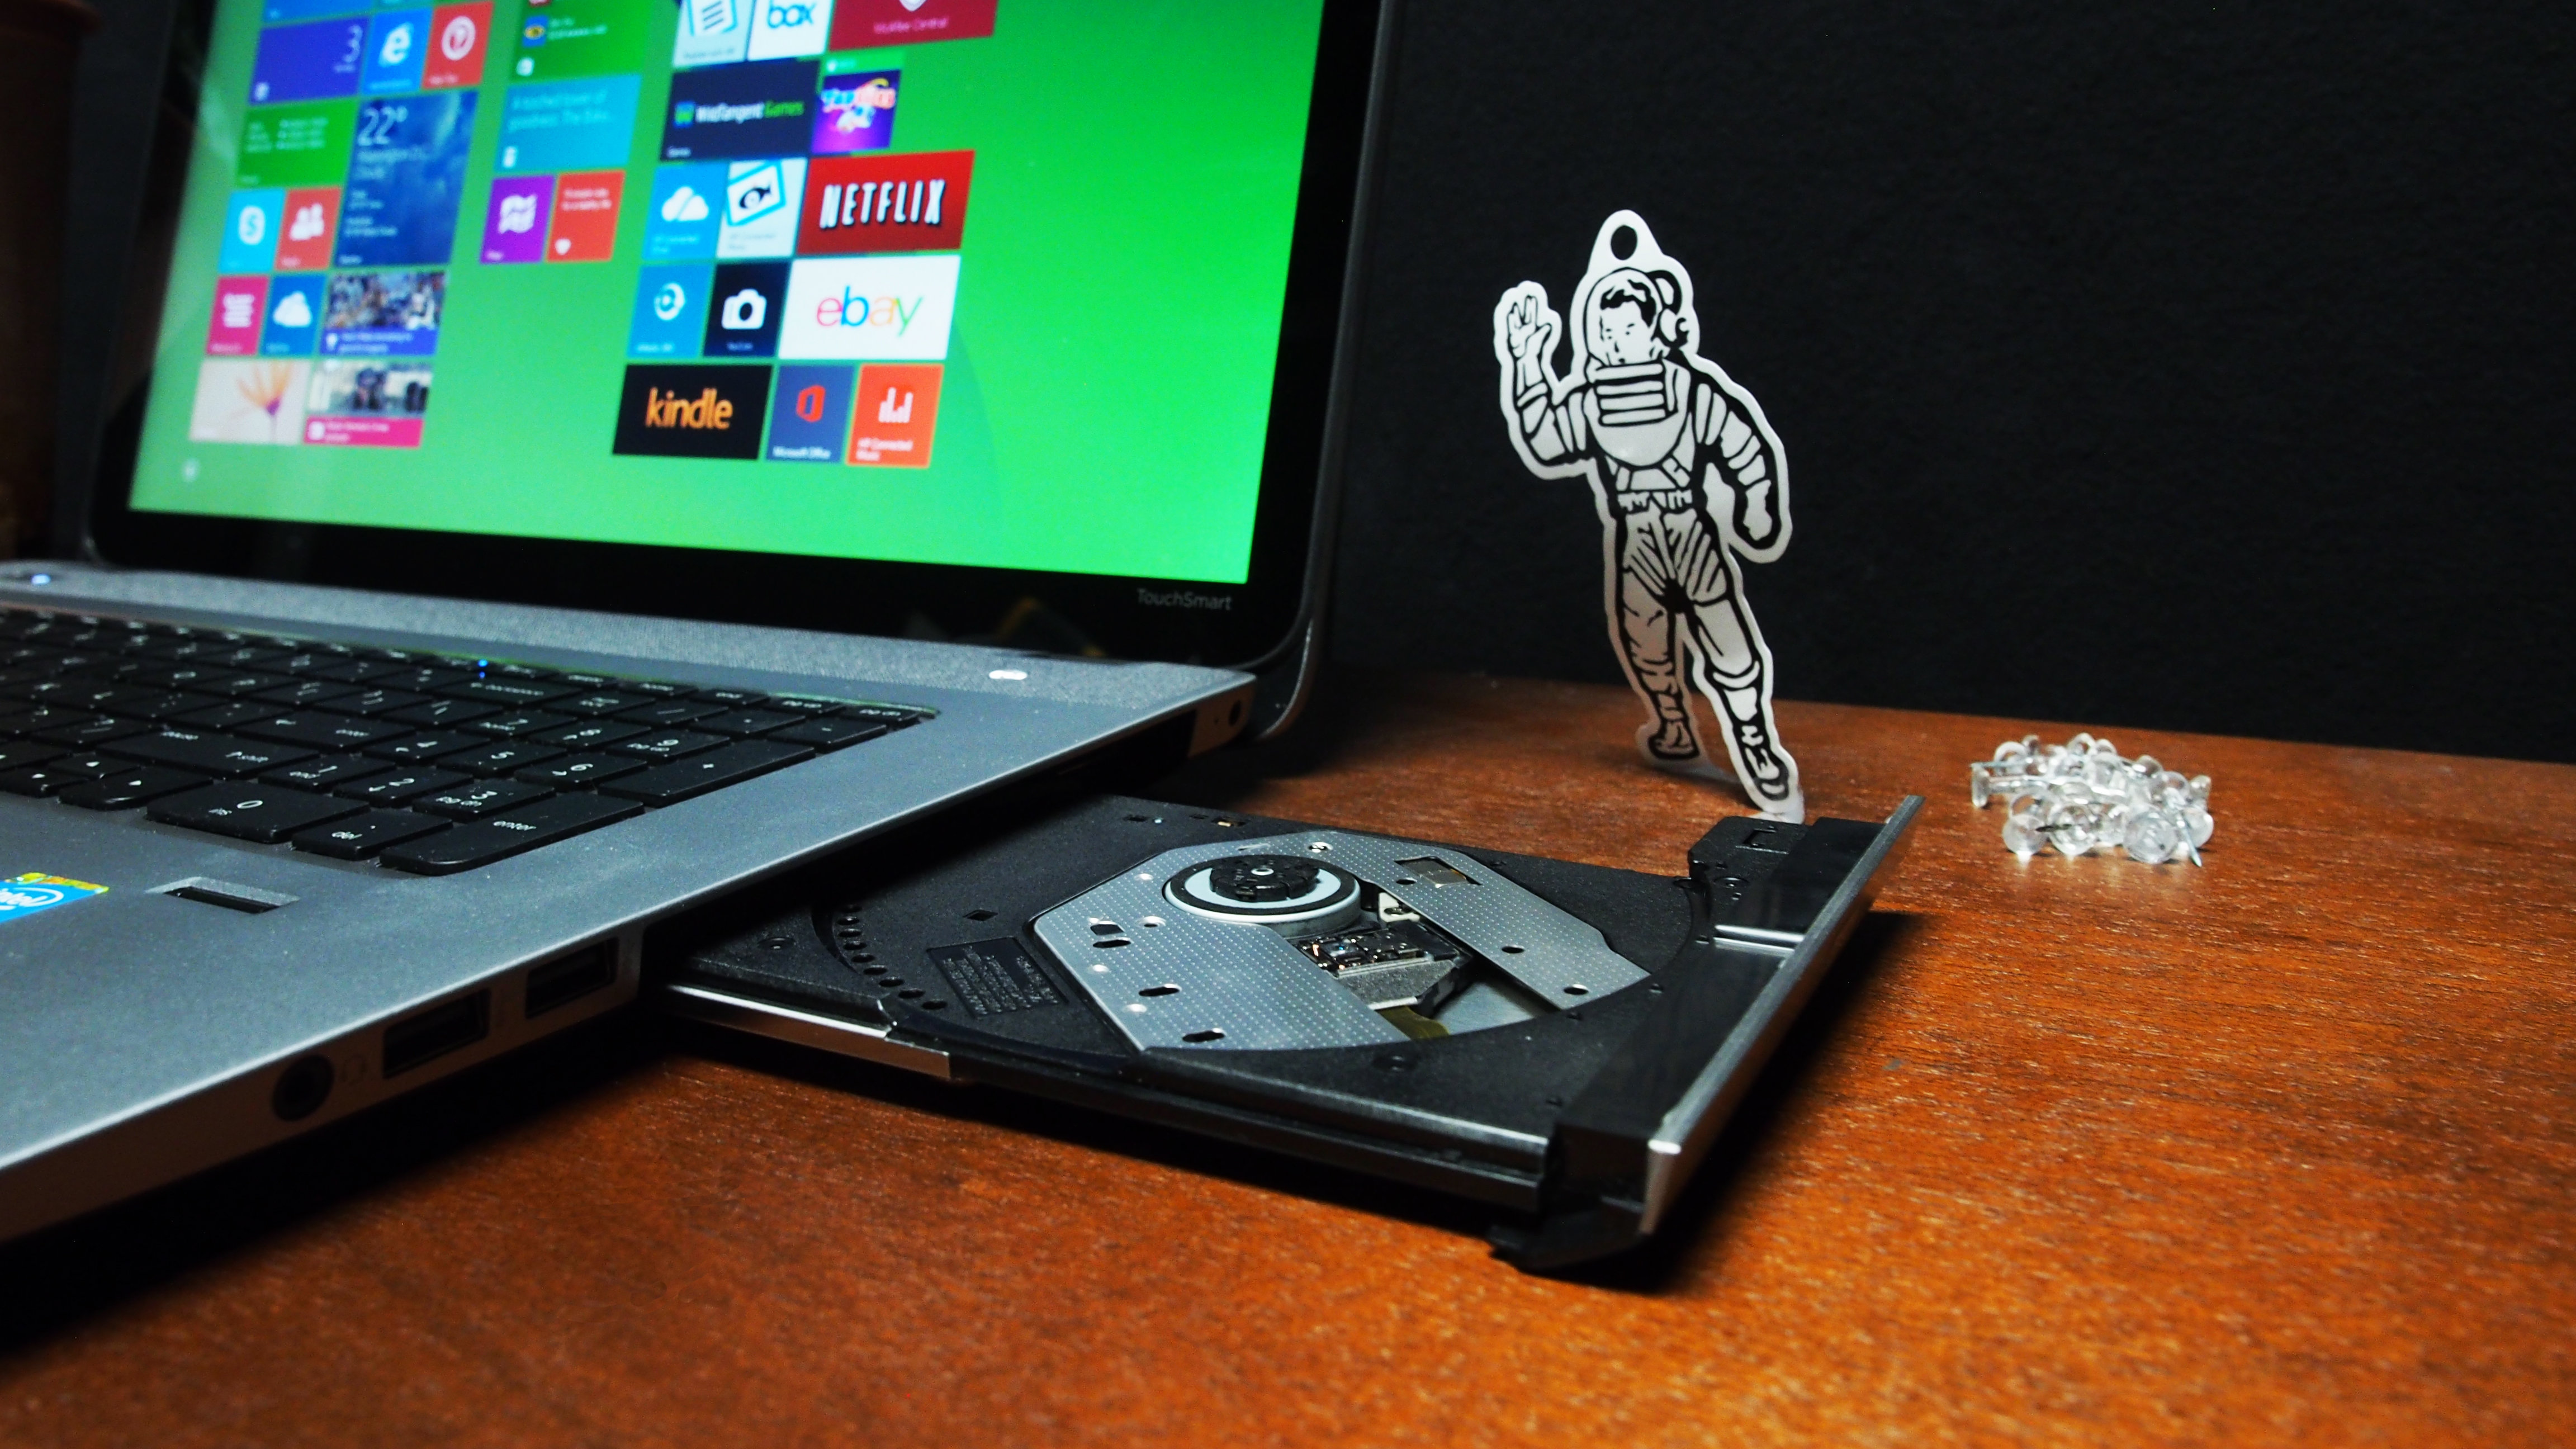 A CD/DVD drive can be found on the HP Envy's right side.